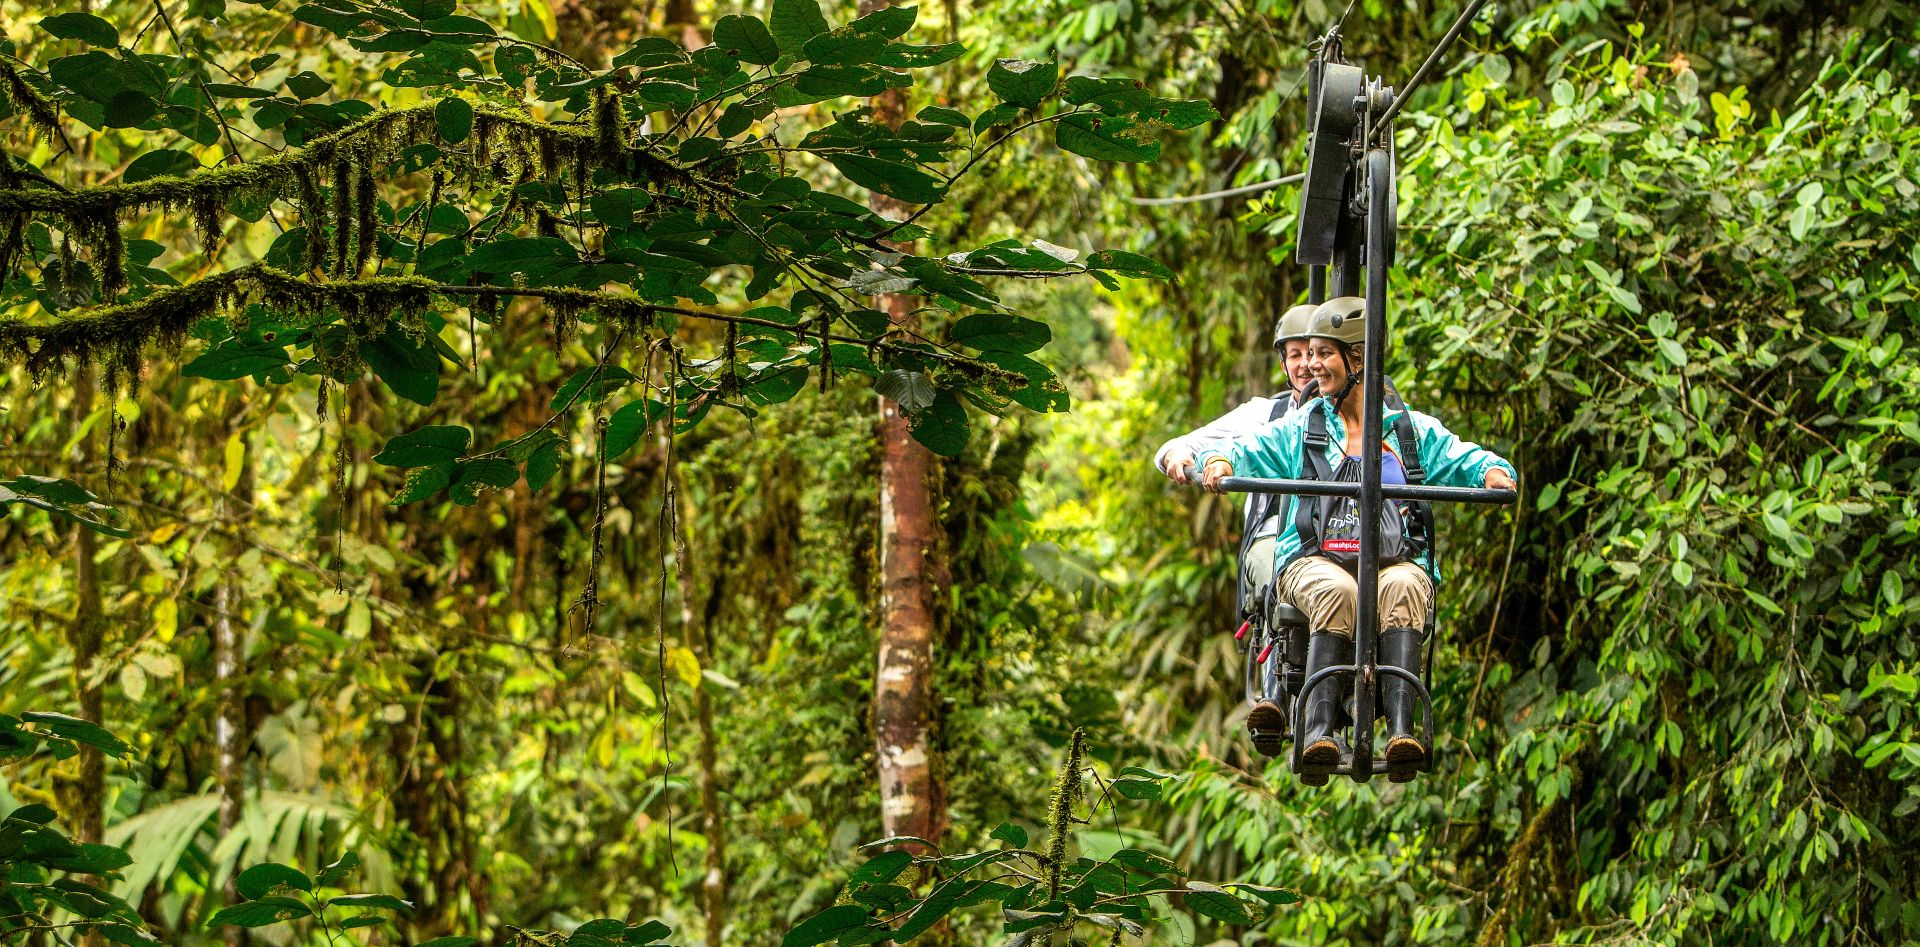 Sky bike your way through the forest canopy